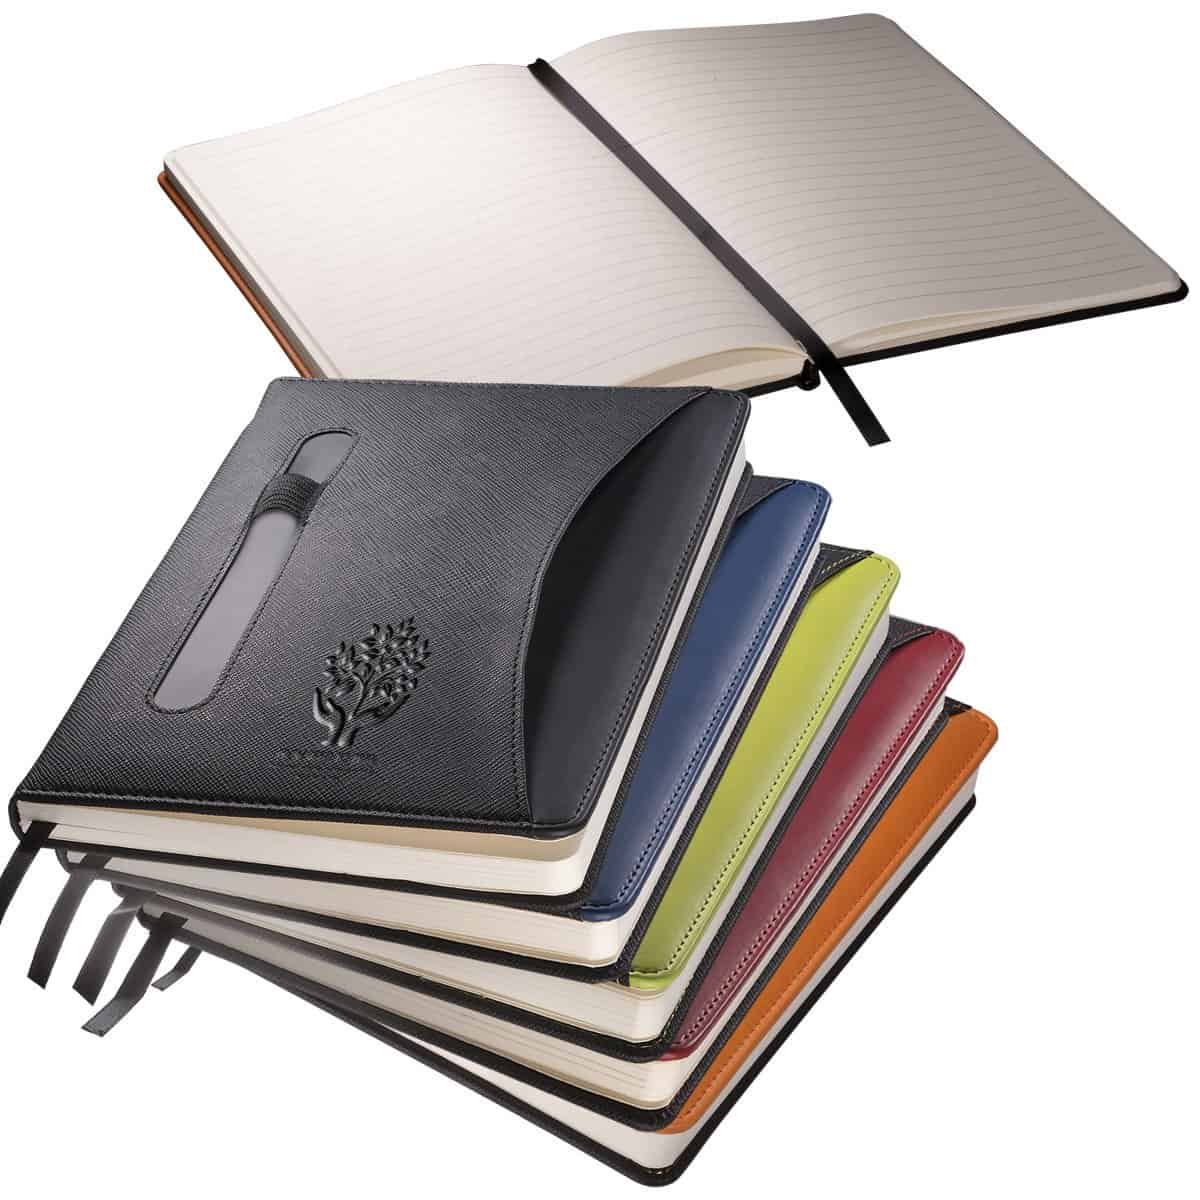 Promotional Journal with Pen Holder